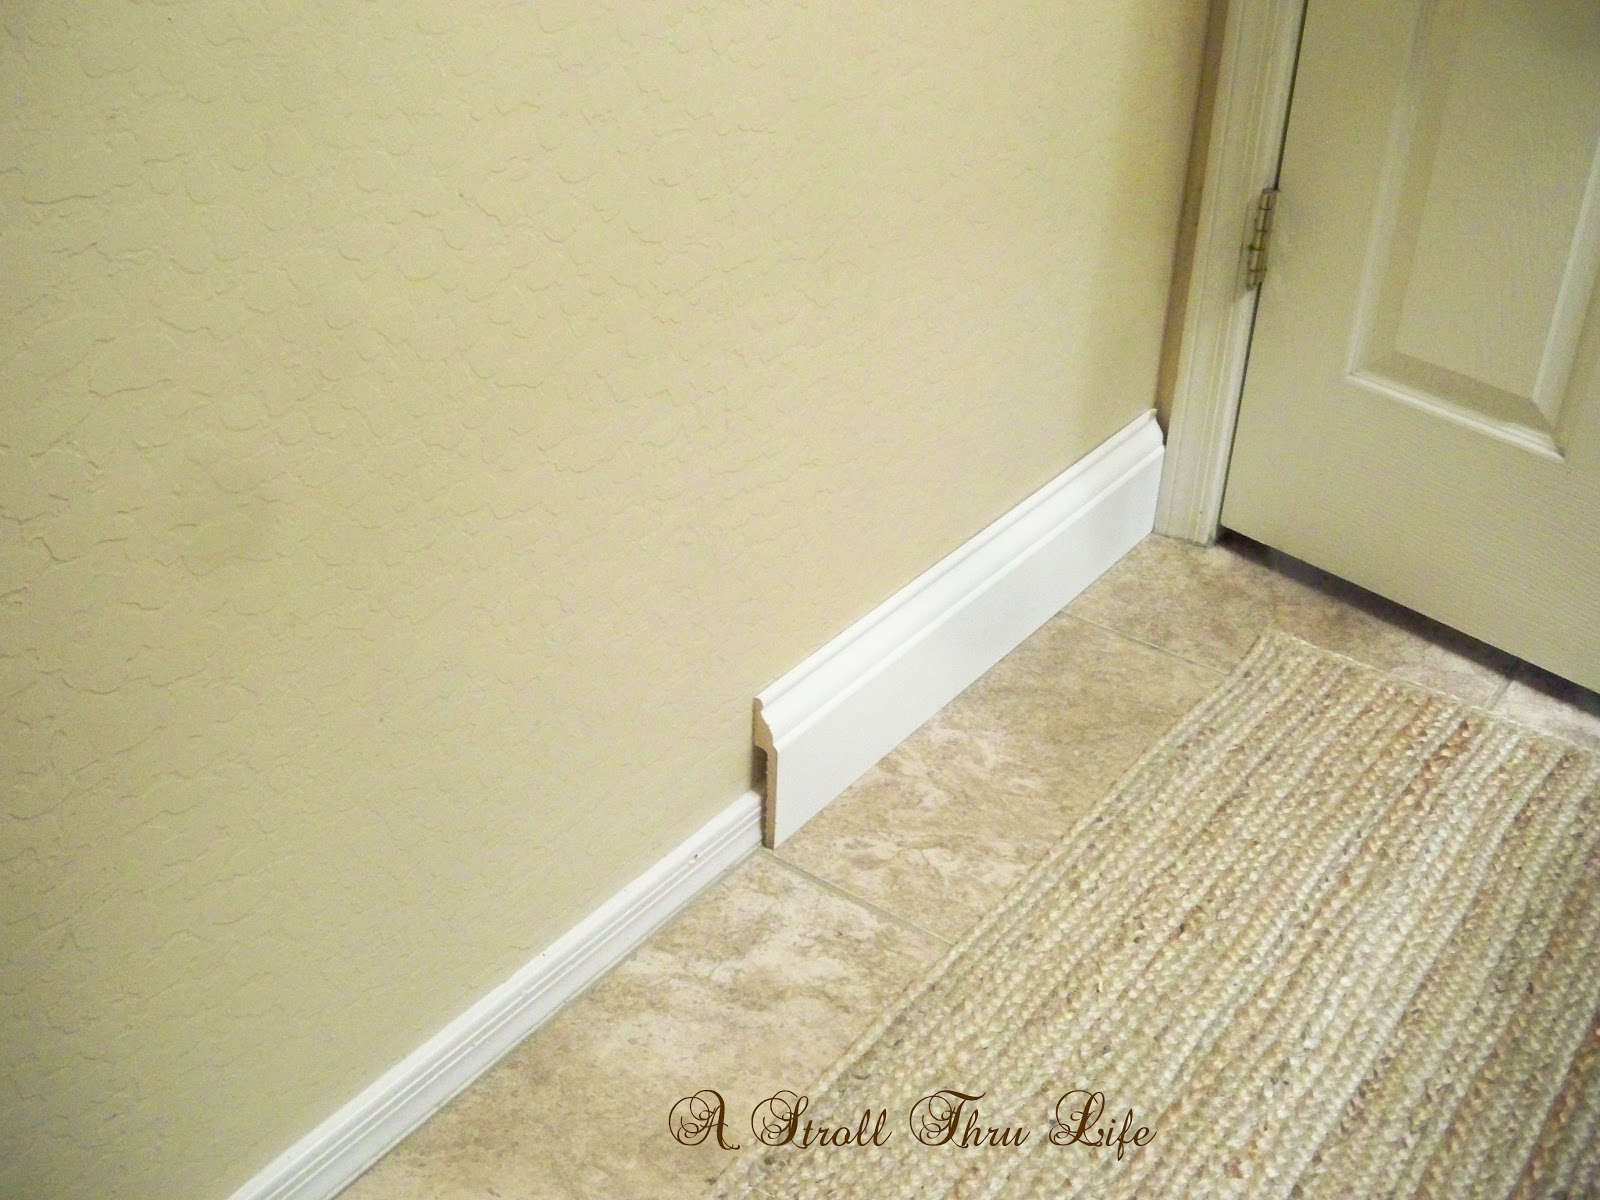 A Stroll Thru Life: Install Wide Baseboard Molding Over Existing ...